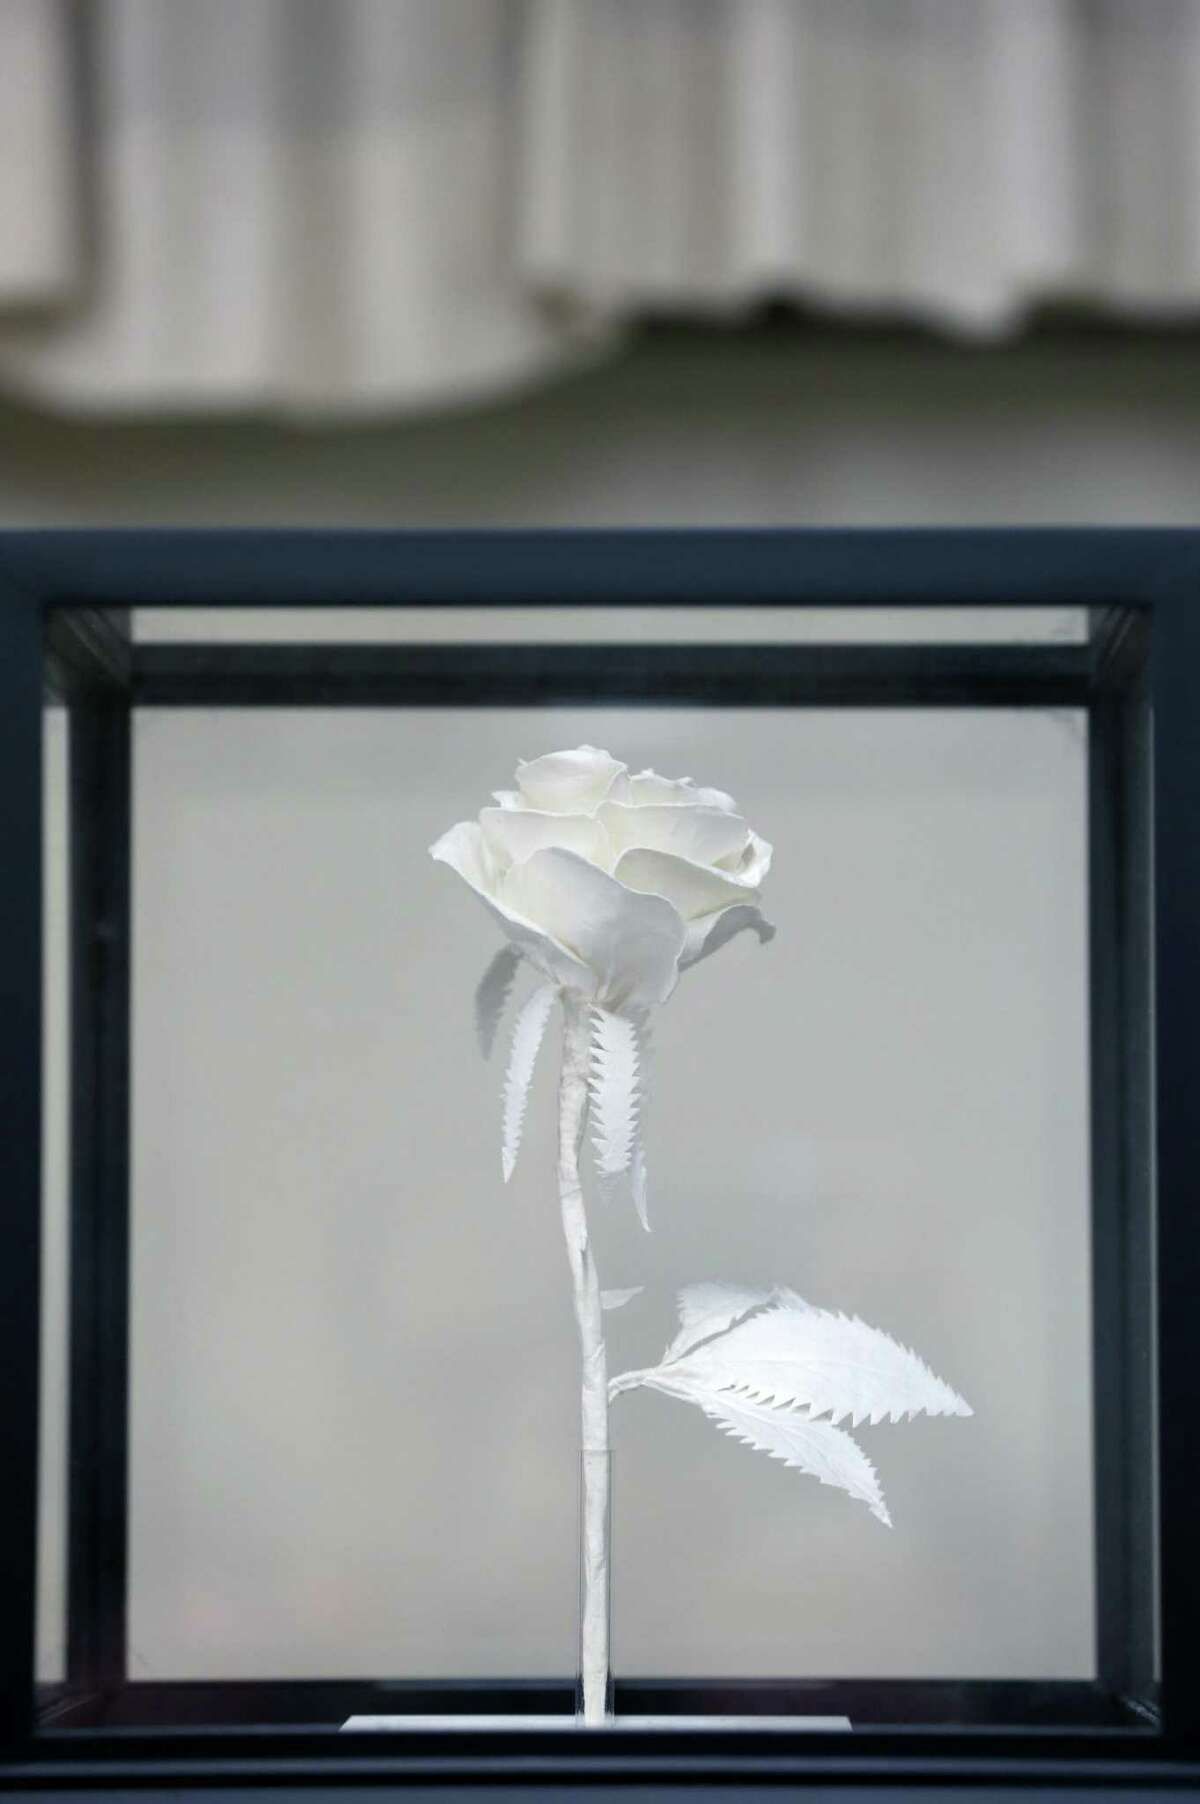 A paper rose, one of the more than 75 artworks by about 35 military veteran artists, is displayed Tuesday, March 7, 2017 at the H. U. Wood Post 245 American Legion Hall in Sequin on the first day of an exhibit sponsored by the Sequin Art League.